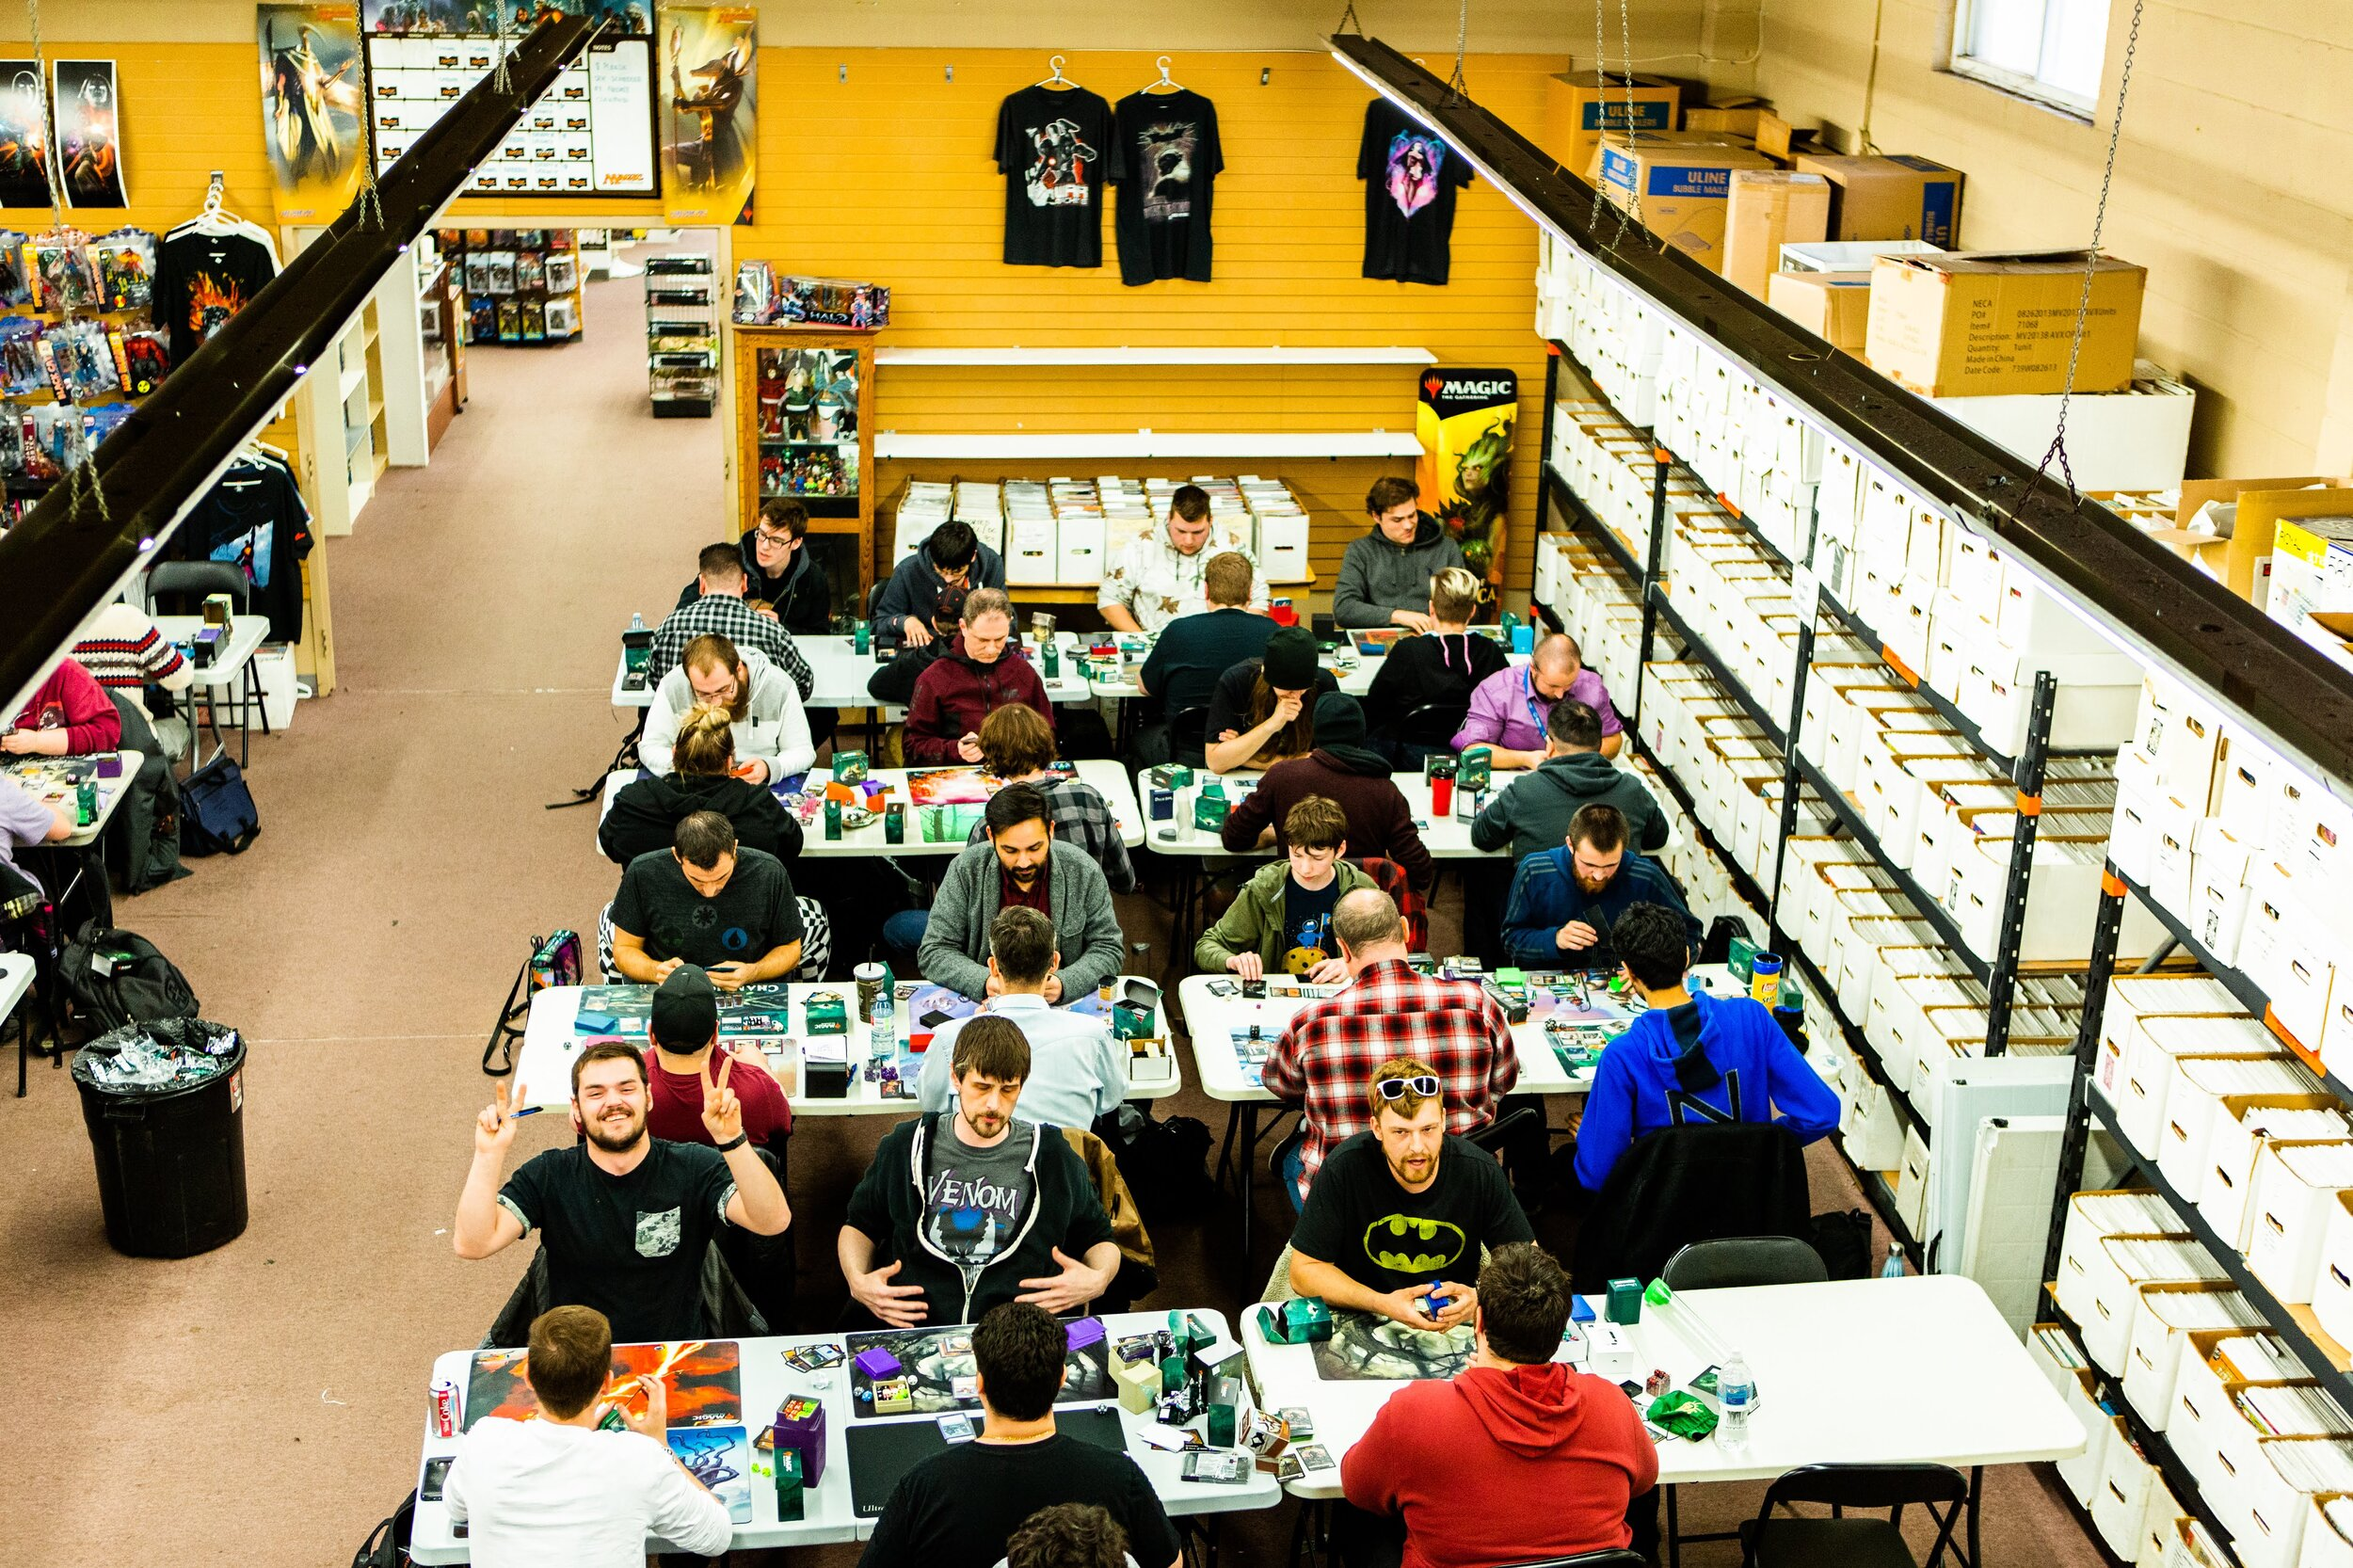 Magic The Gathering Events - Tuesday: Commander all day till closeWednesday: Standard @6Pm $5 entry W/ PrizingThursday: Modern @6Pm $5 Entry W/ PrizingFriday: FNM draft and Legacy $17 for draft $10 for legacy both with prizing and FNM promos!Saturday: Modern @2Pm $5 Entry W/ PrizingSunday: Draft @ 1Pm $17 entry W/ Prizing